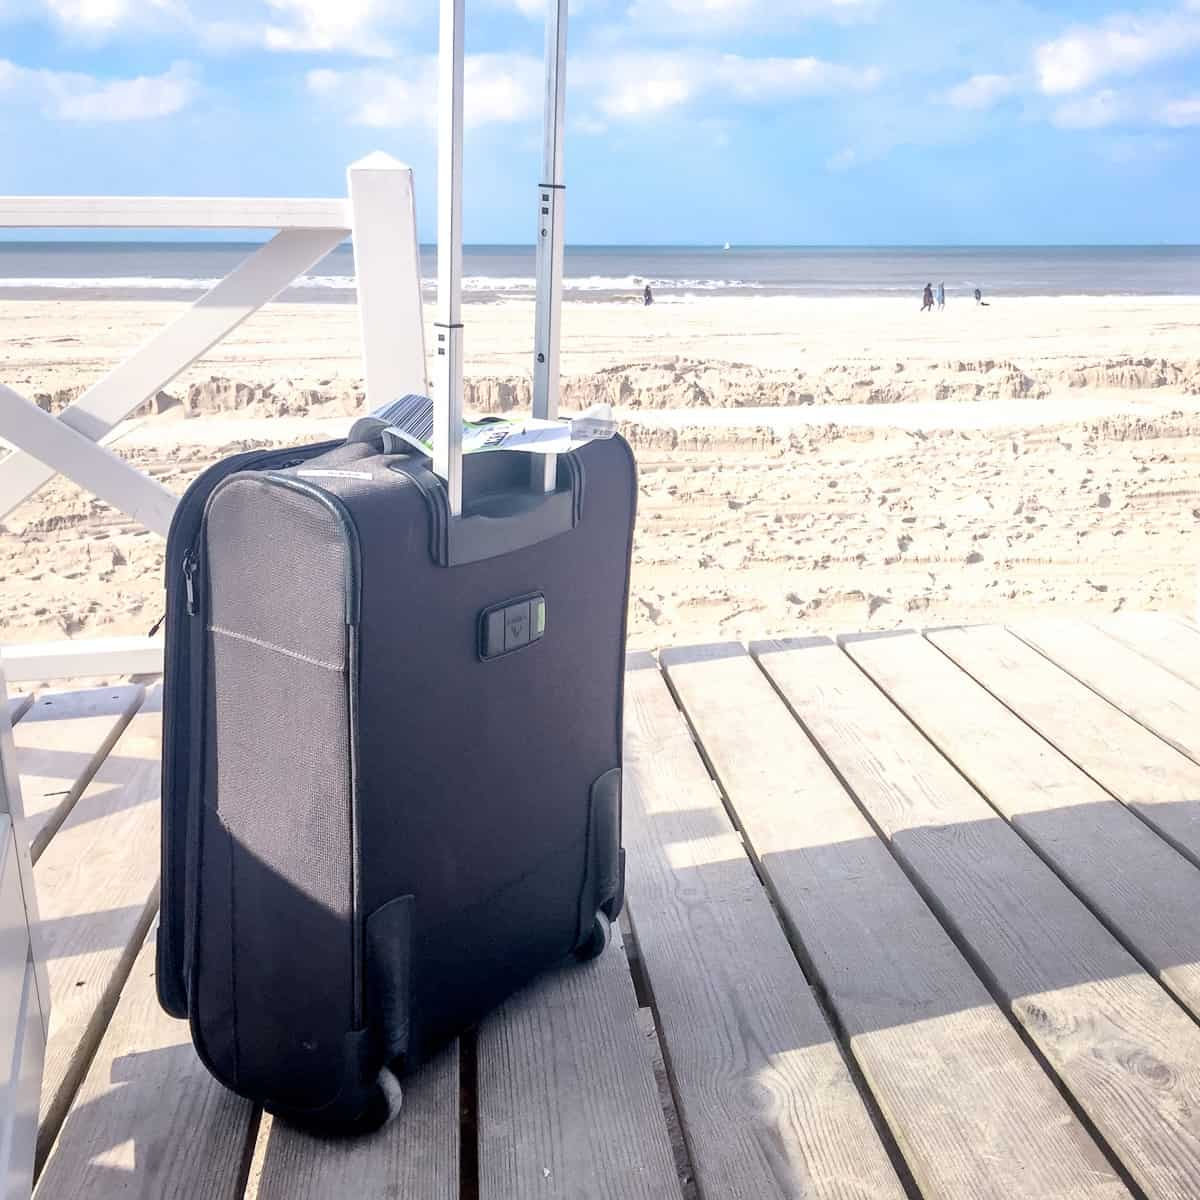 Suitcase in front of a beach